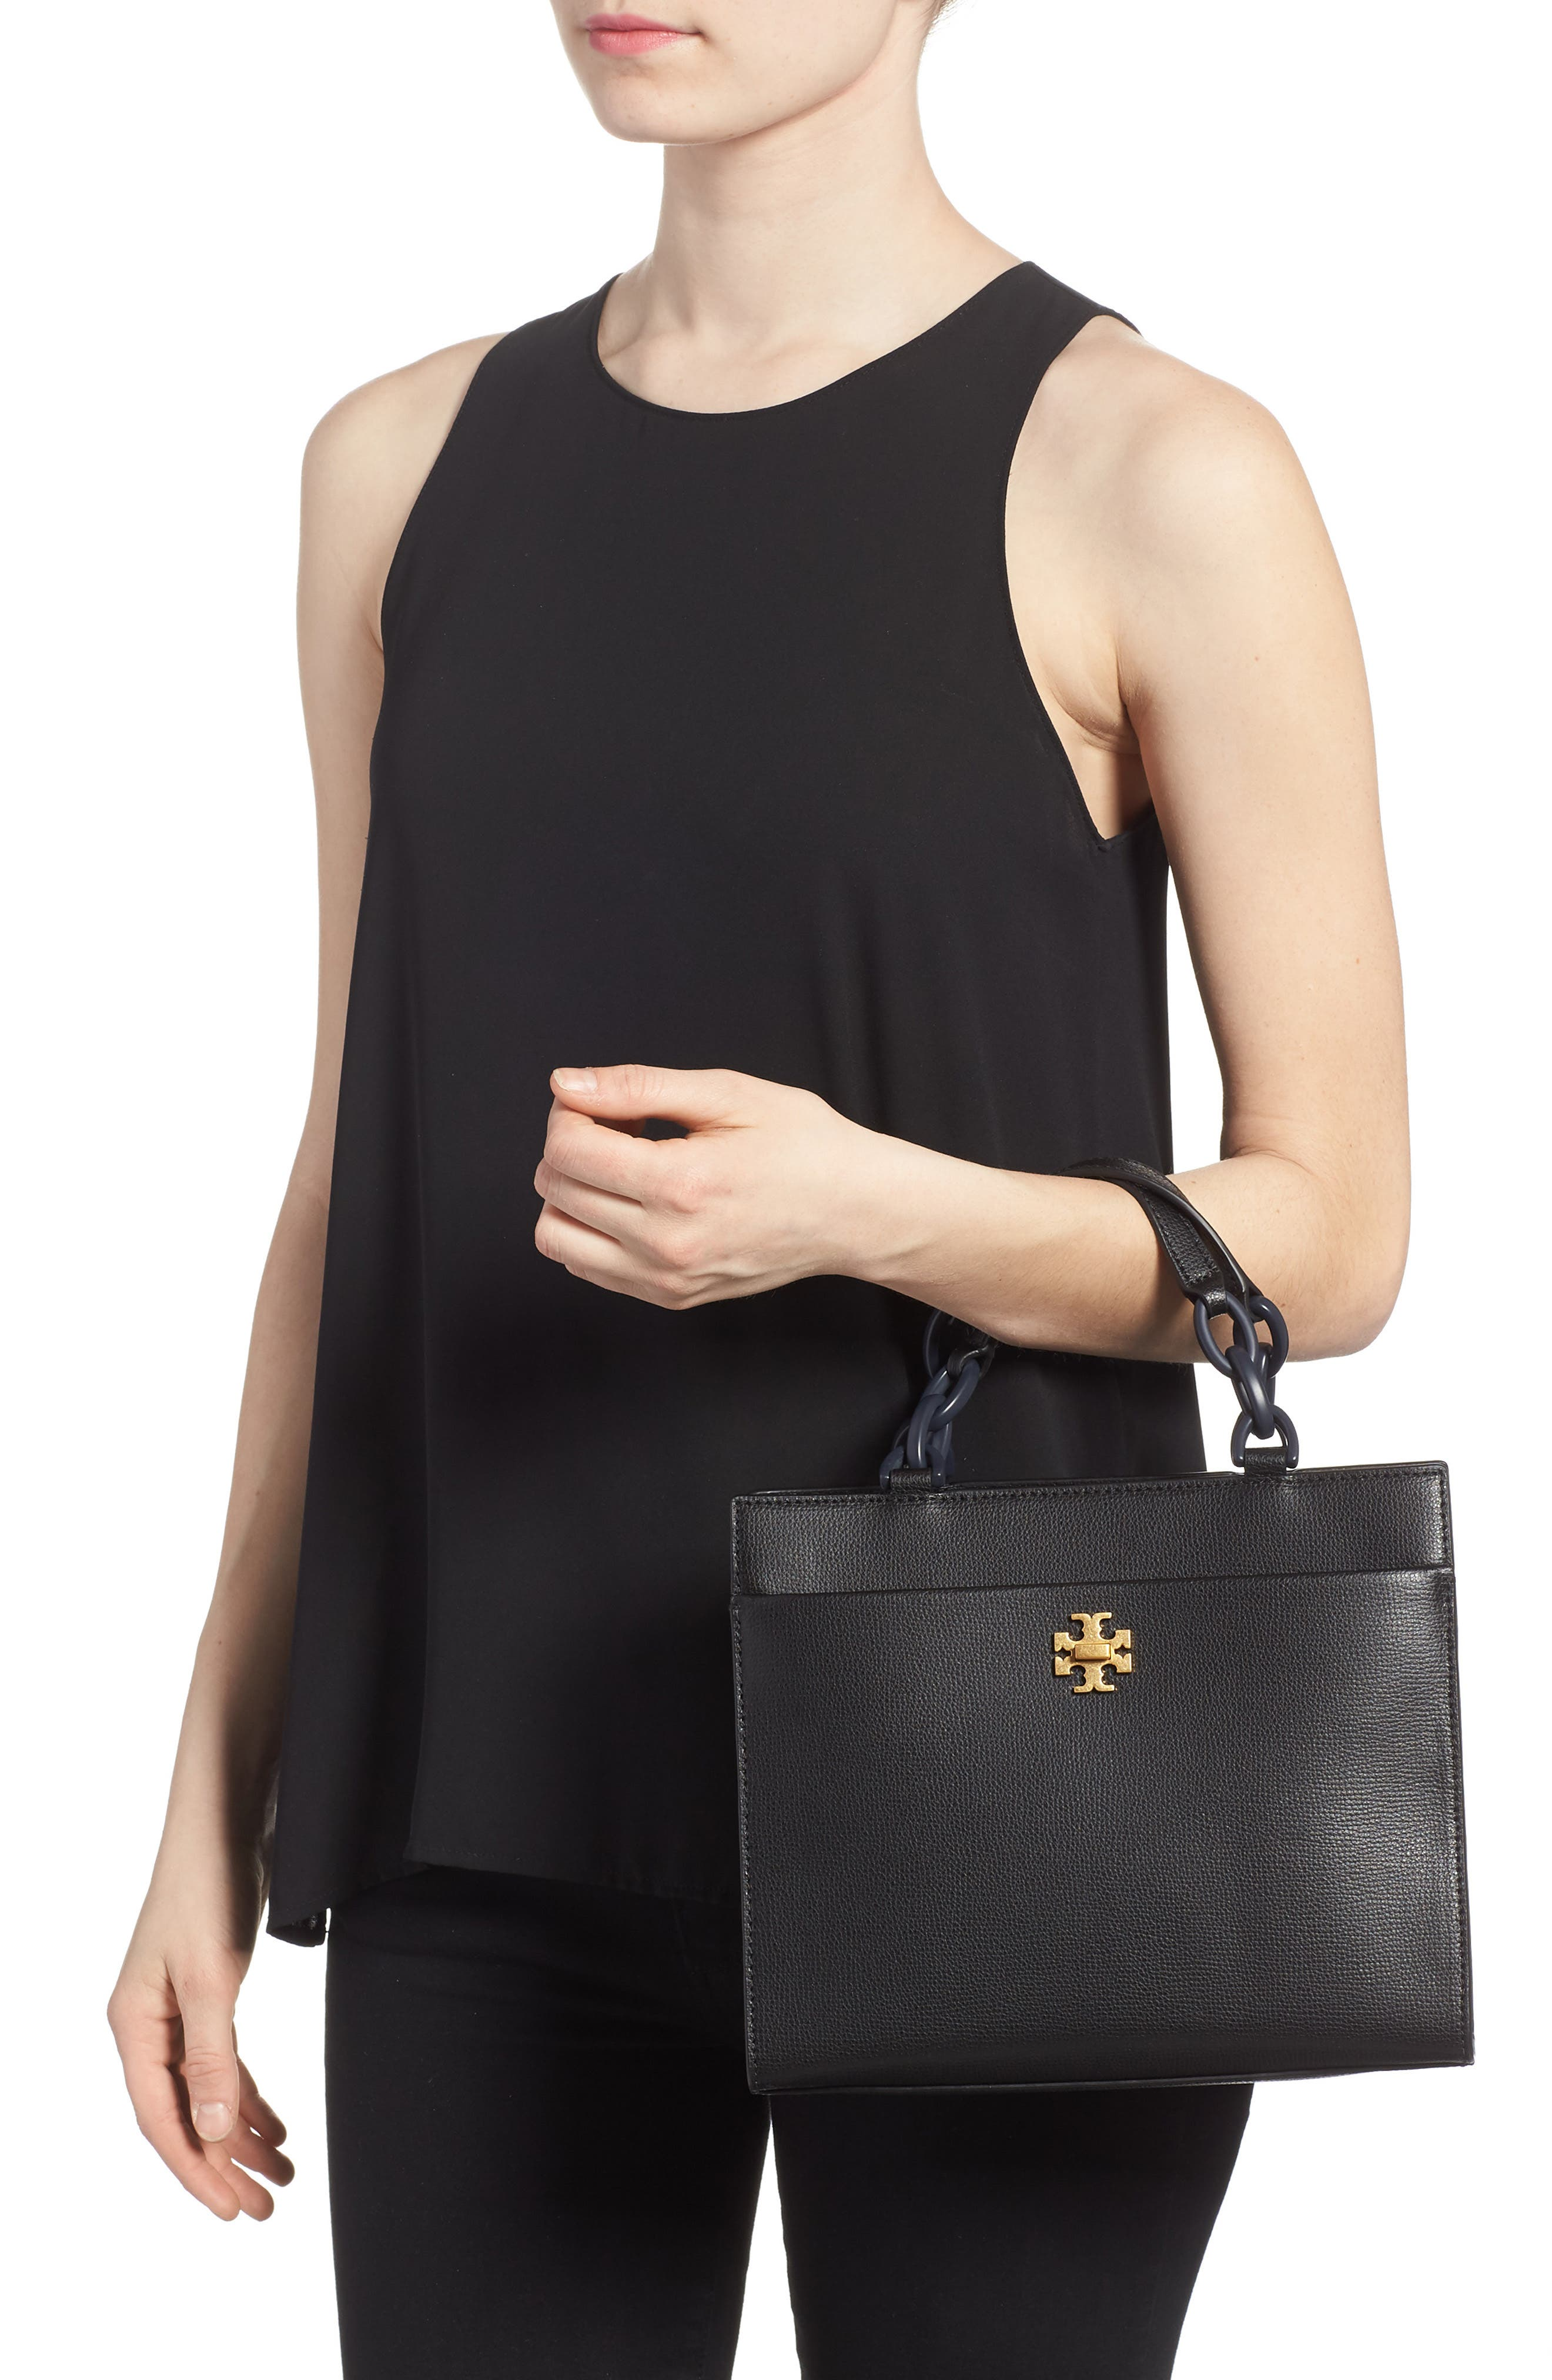 Tory Burch Tote Bags For Women Leather Coated Canvas Neoprene Fleming Convert Medium Nordstrom